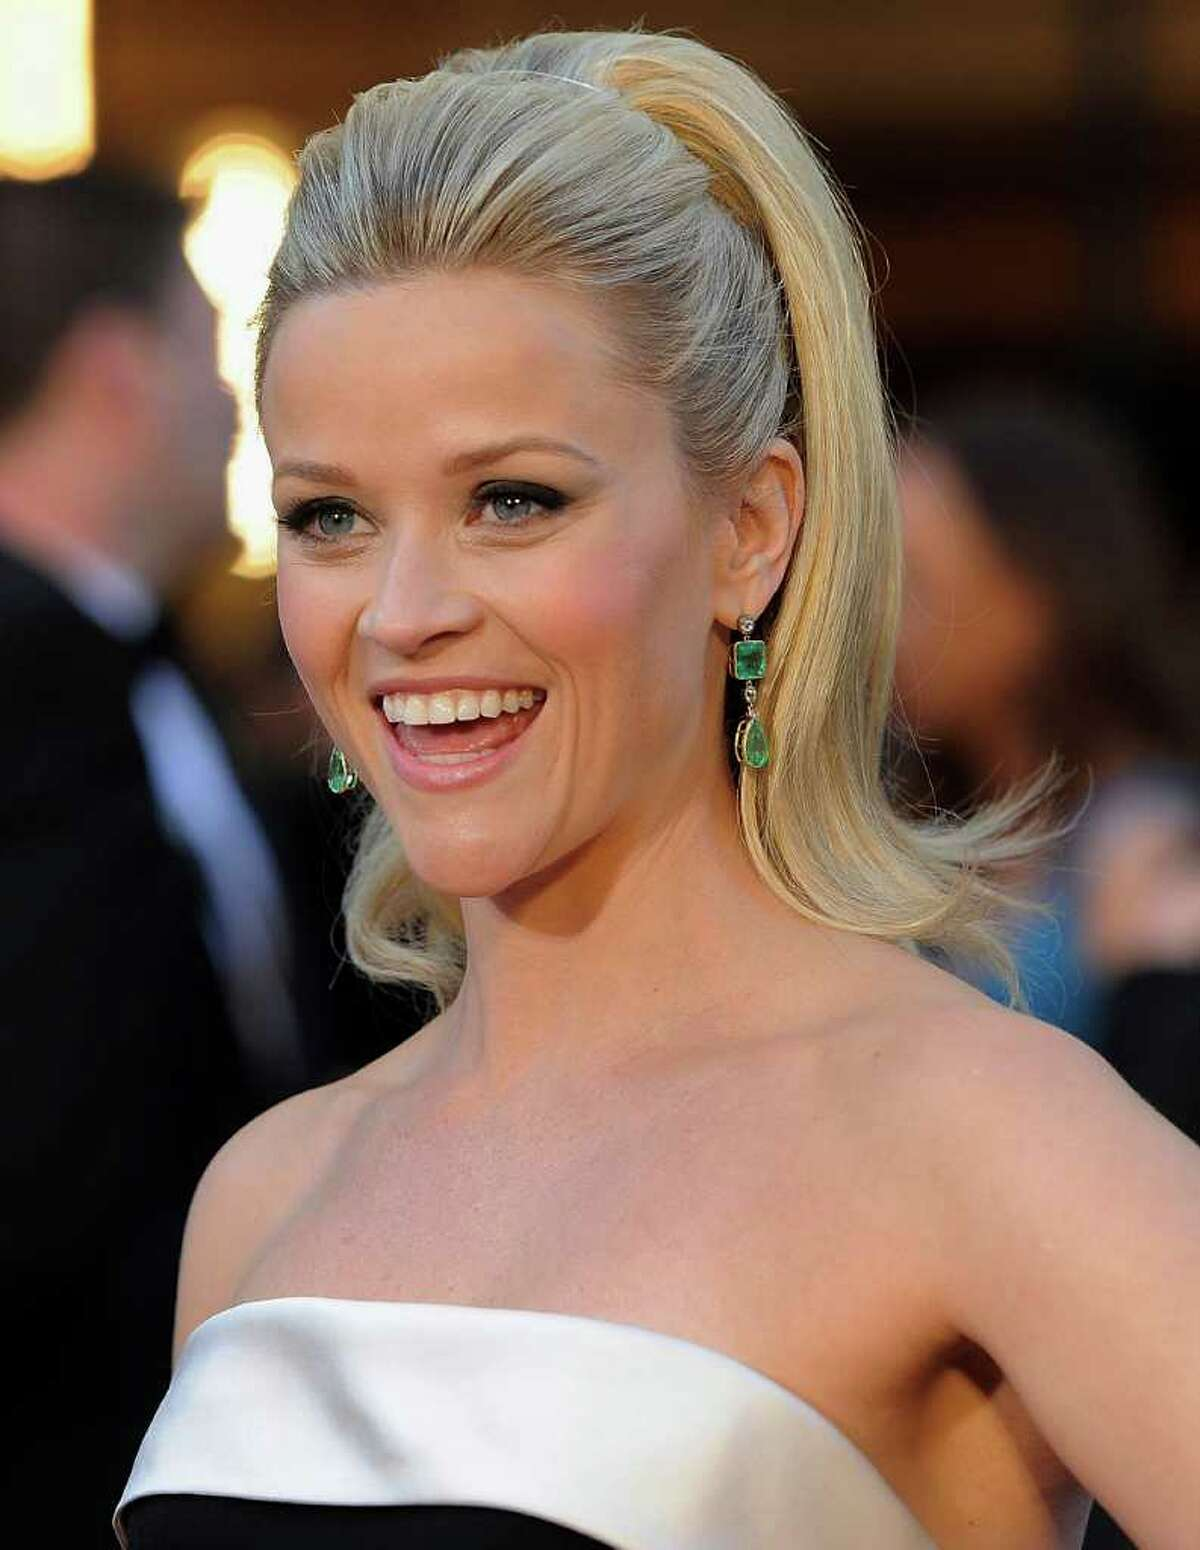 FILE - In this Feb. 27, 2011 file photo, Reese Witherspoon arrives before the 83rd Academy Awards in the Hollywood section of Los Angeles. A spokeswoman for Witherspoon says the star wed her fiance, Hollywood agent Jim Toth, Saturday, March 26, 2011 in Ojai, Calif., about 90 miles north of Los Angeles. (AP Photo/Chris Pizzello, File)